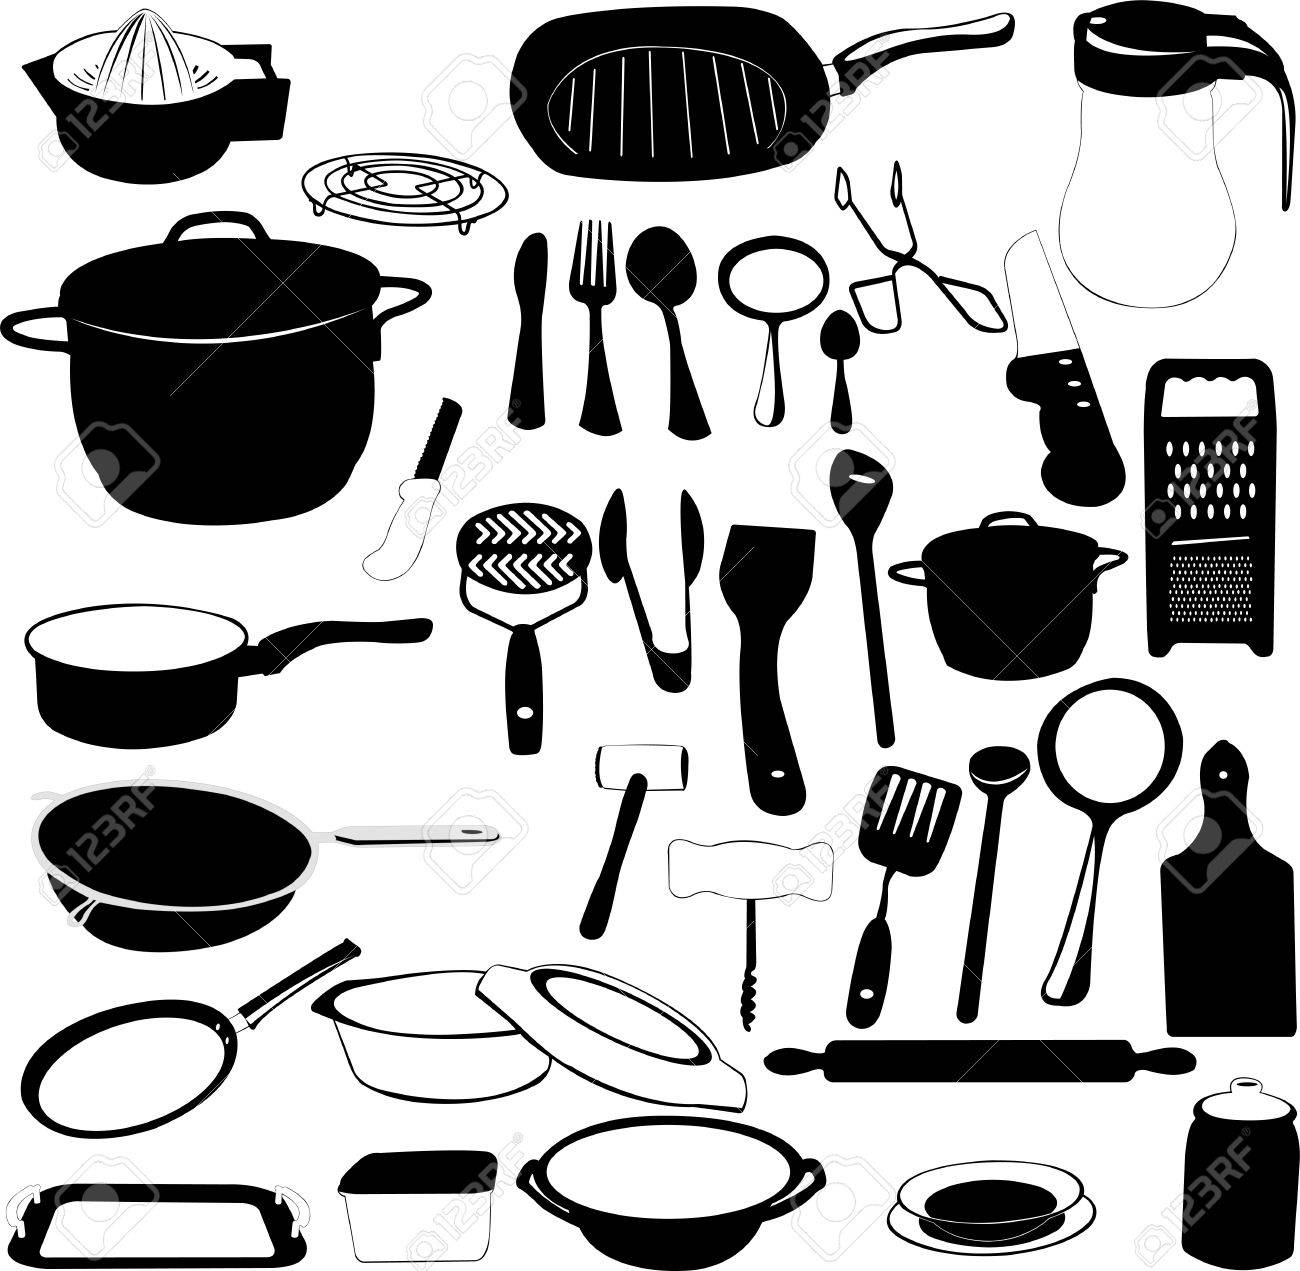 Kitchen tools drawing - Vector Kitchen Tools Collection